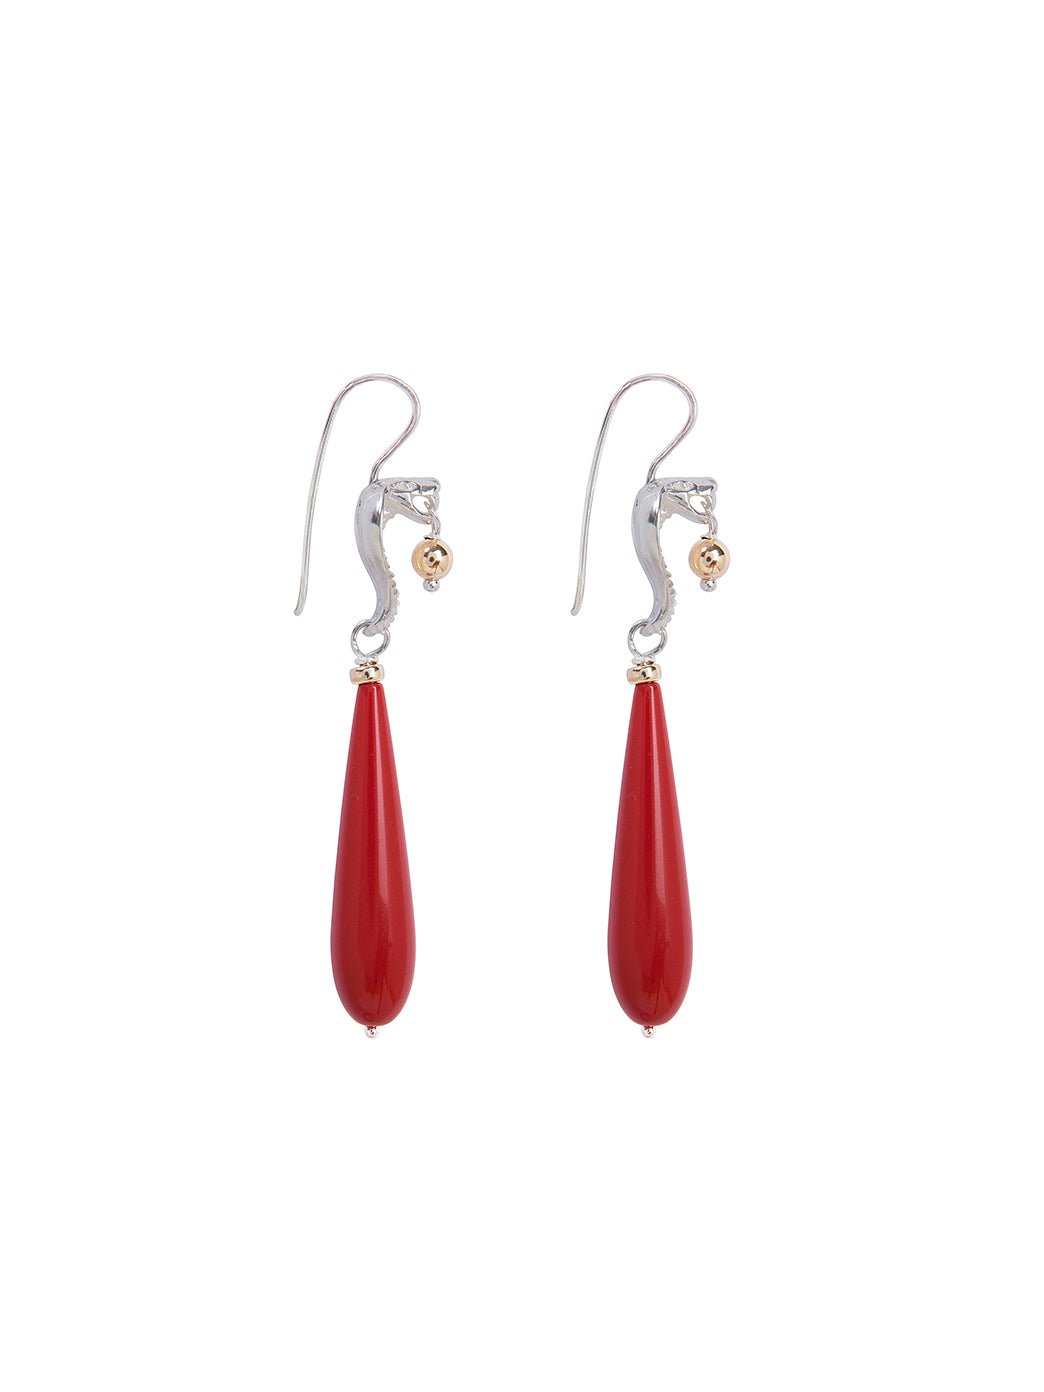 Fiorina Jewellery Medusa Cobra Earrings Red Coral Side View